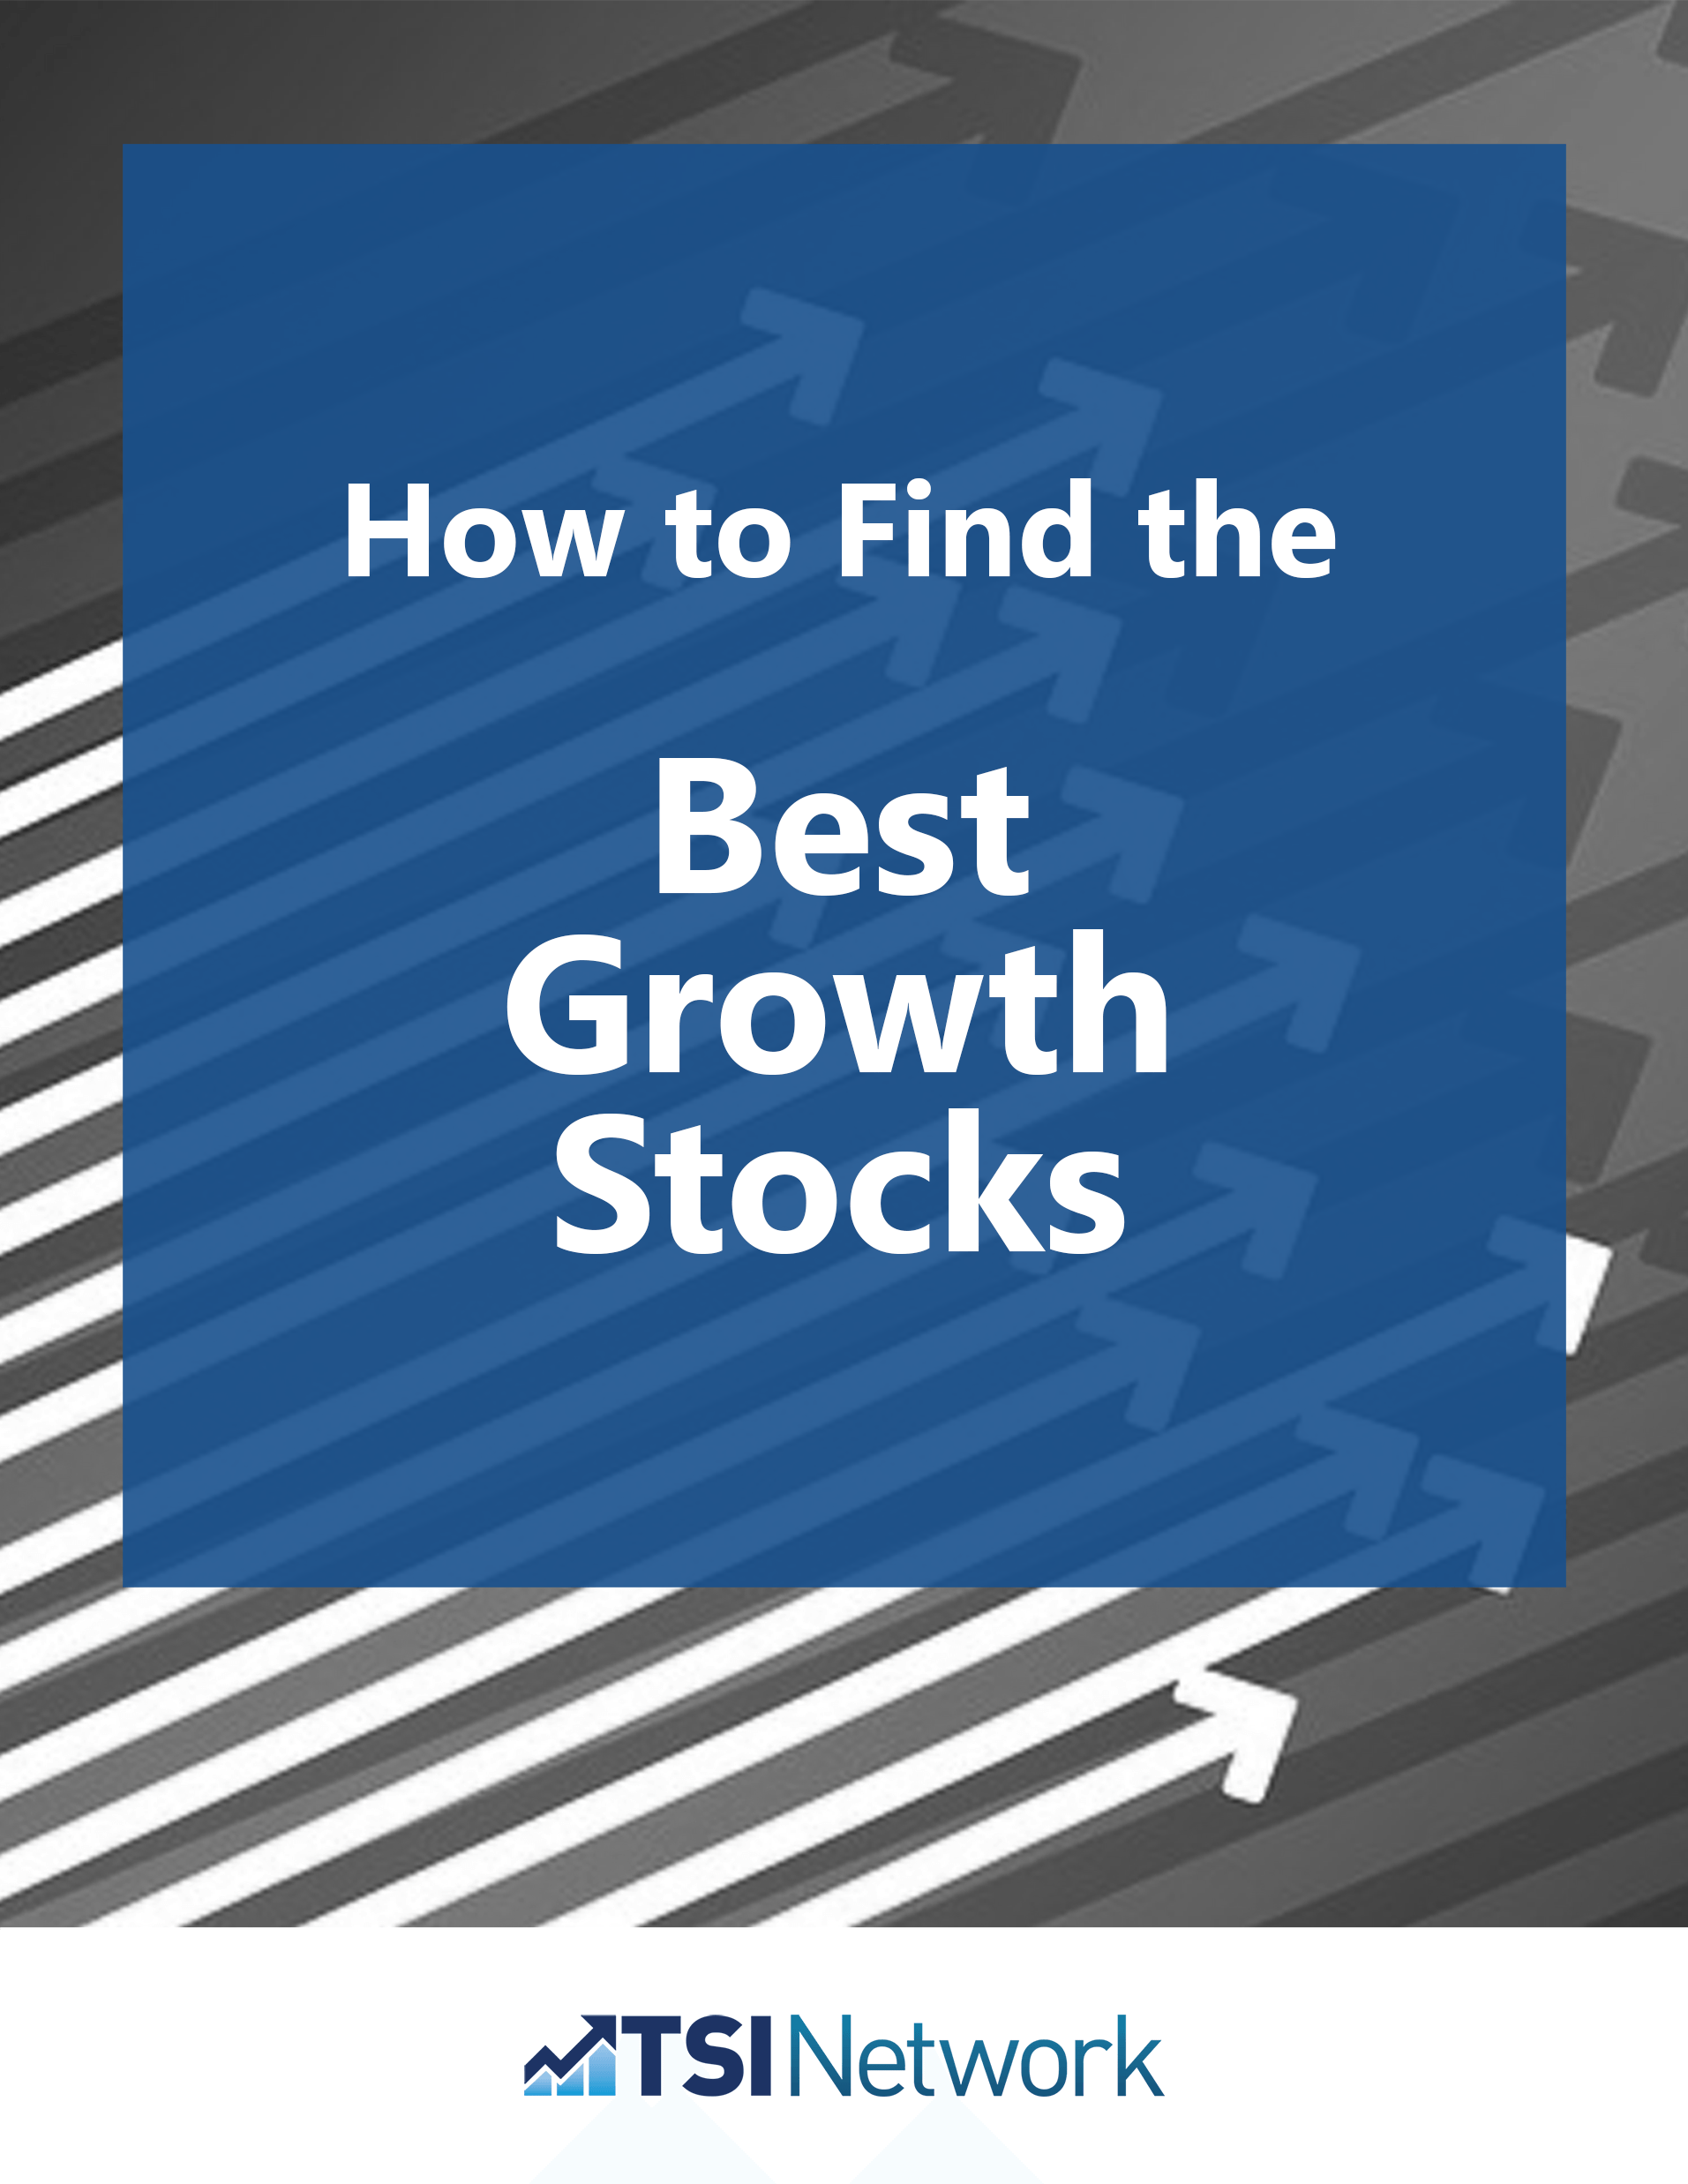 How to Find the Best Growth Stocks